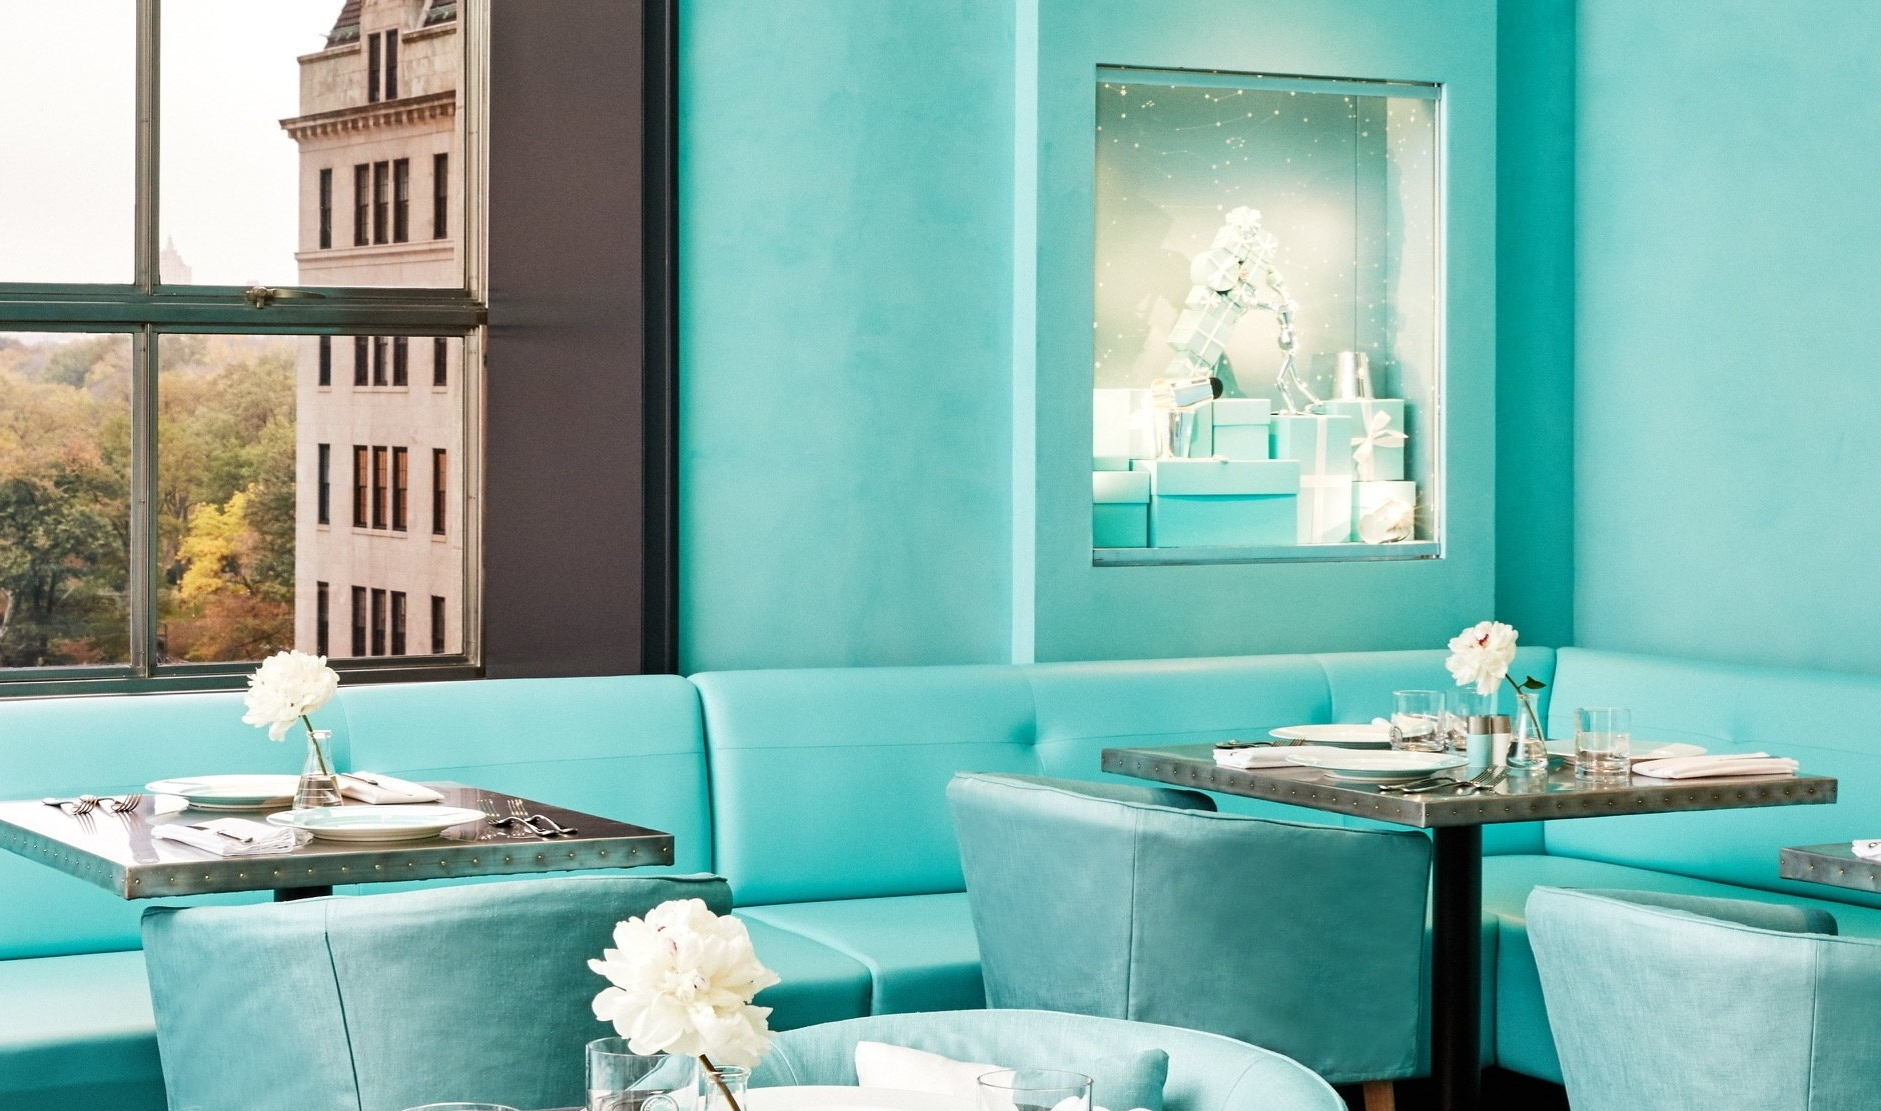 Widely Used Tiffany And Co Wall Art Pertaining To Finally, You Can Have Breakfast At Tiffany – The New York Times (View 15 of 15)